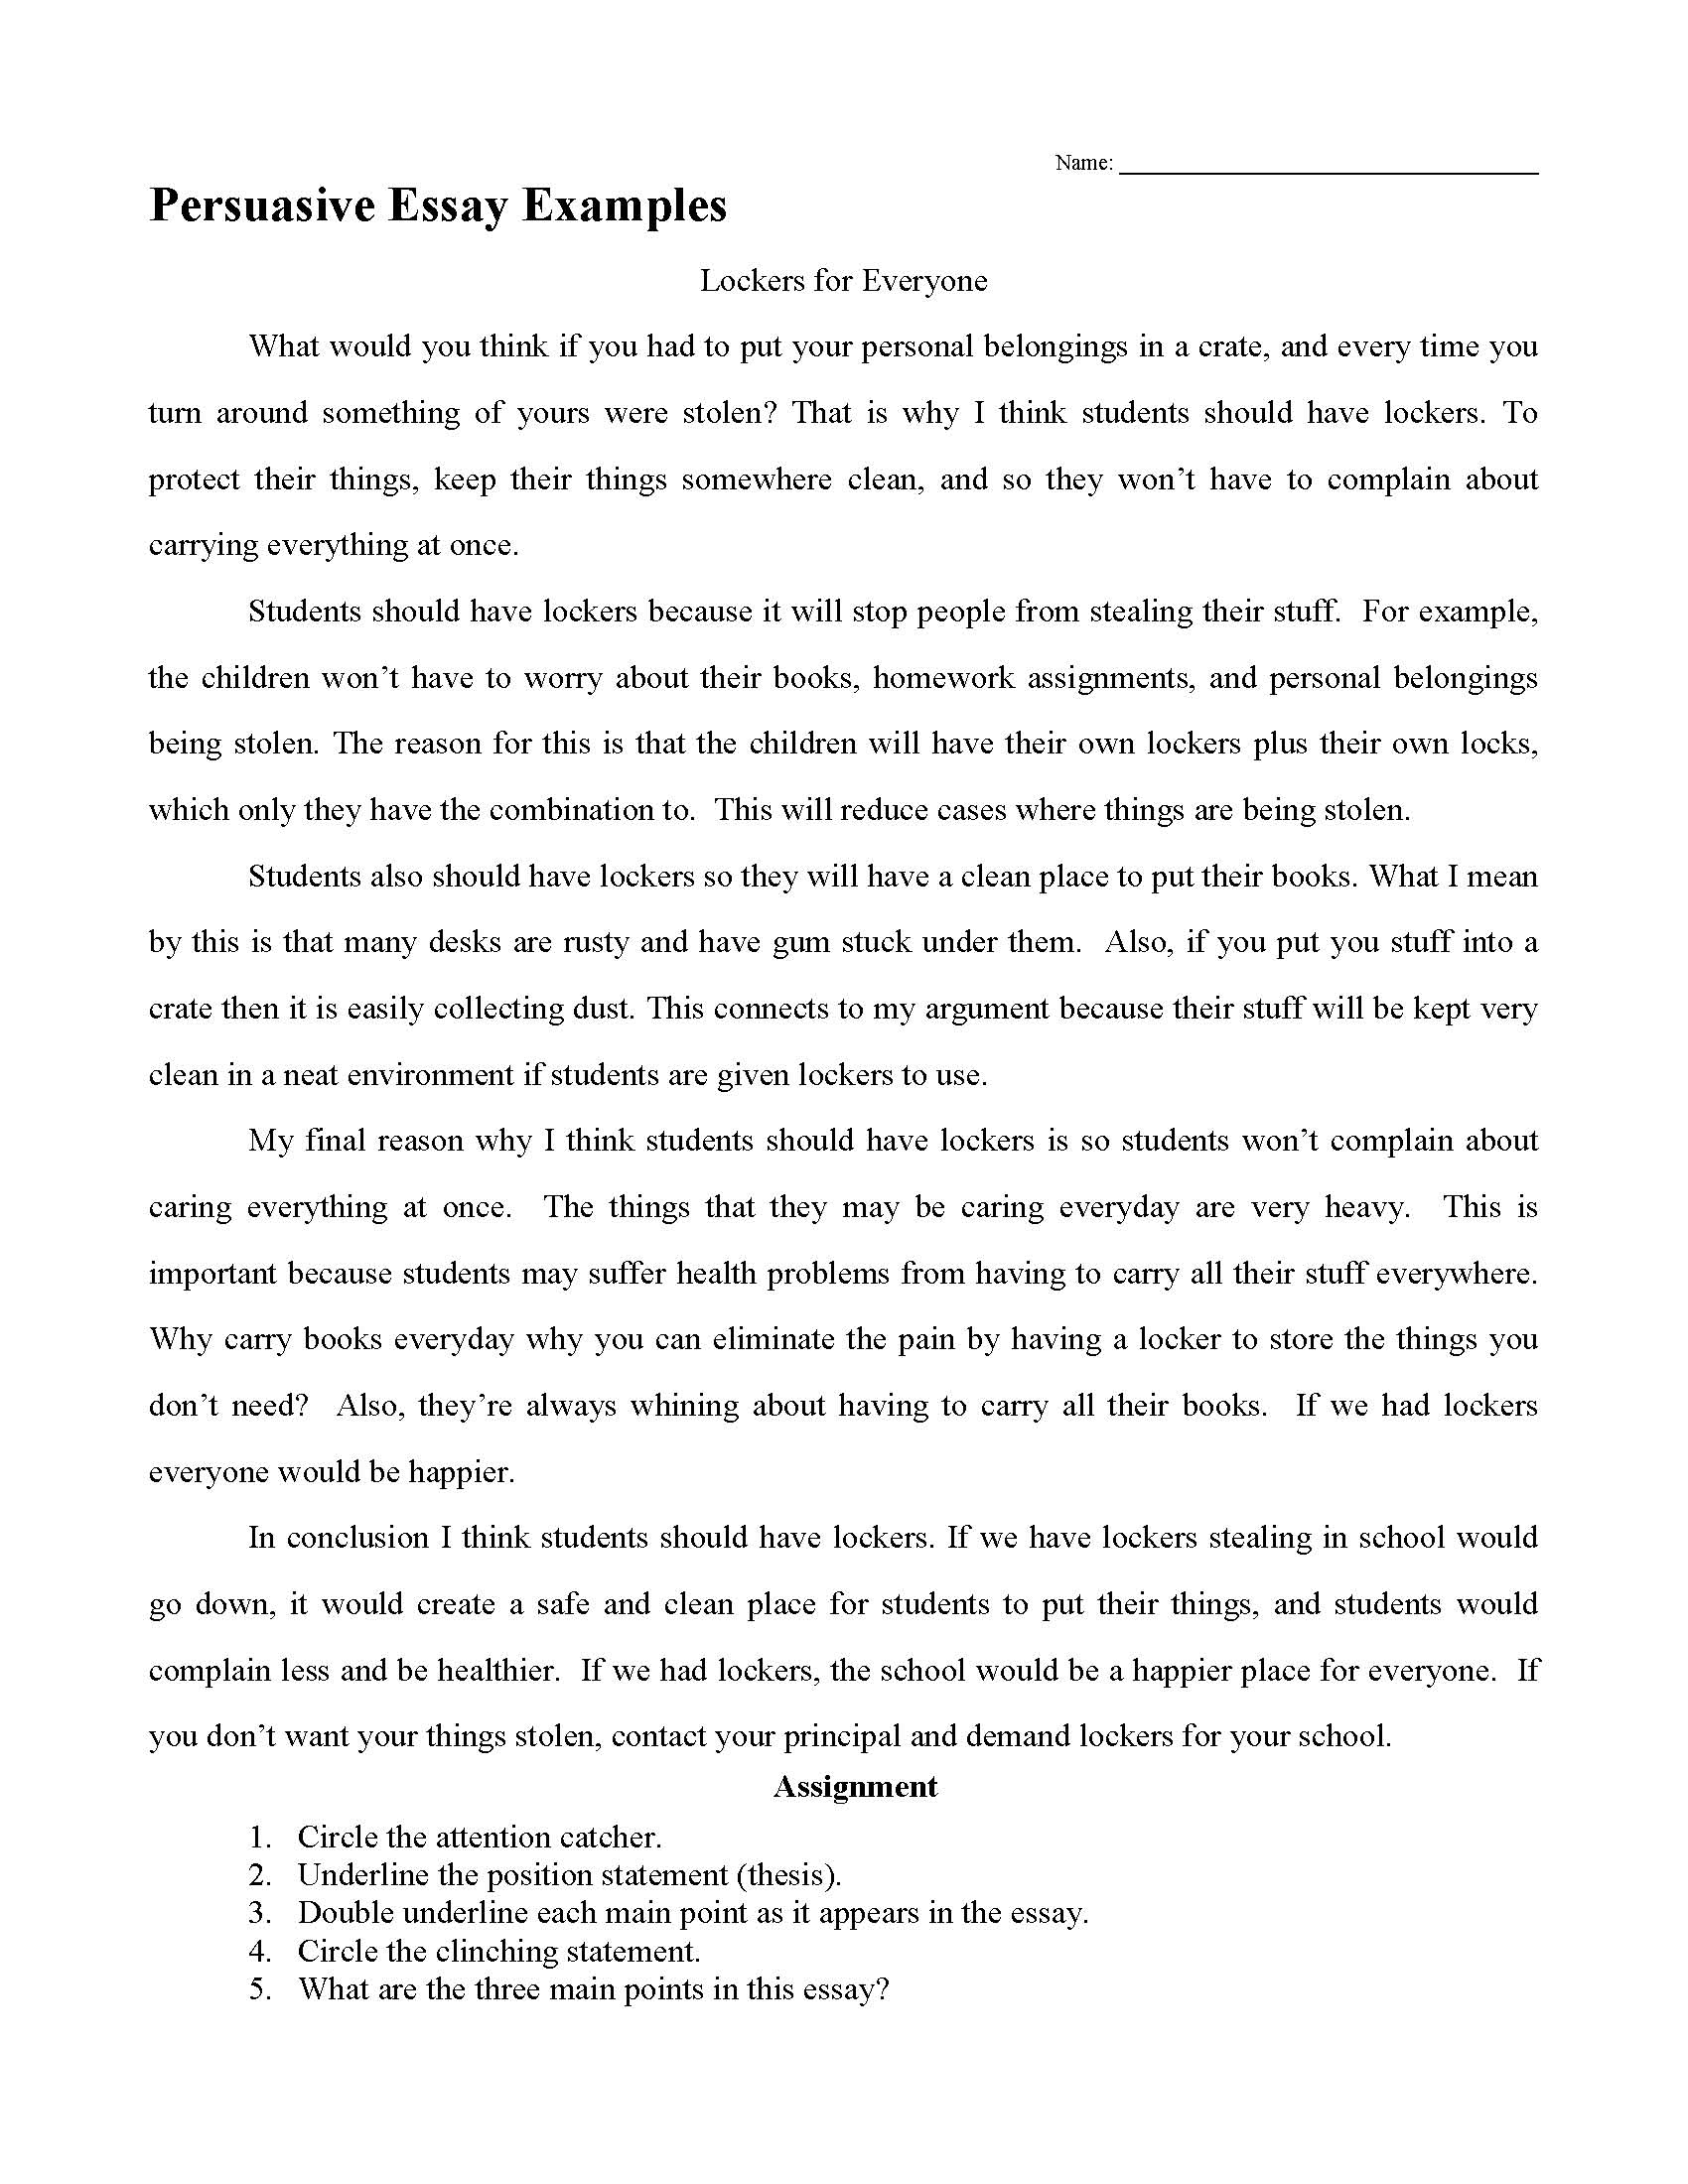 027 Persuasive Essay Examples Research Paper How To Write Breathtaking A Fast Youtube Faster Full